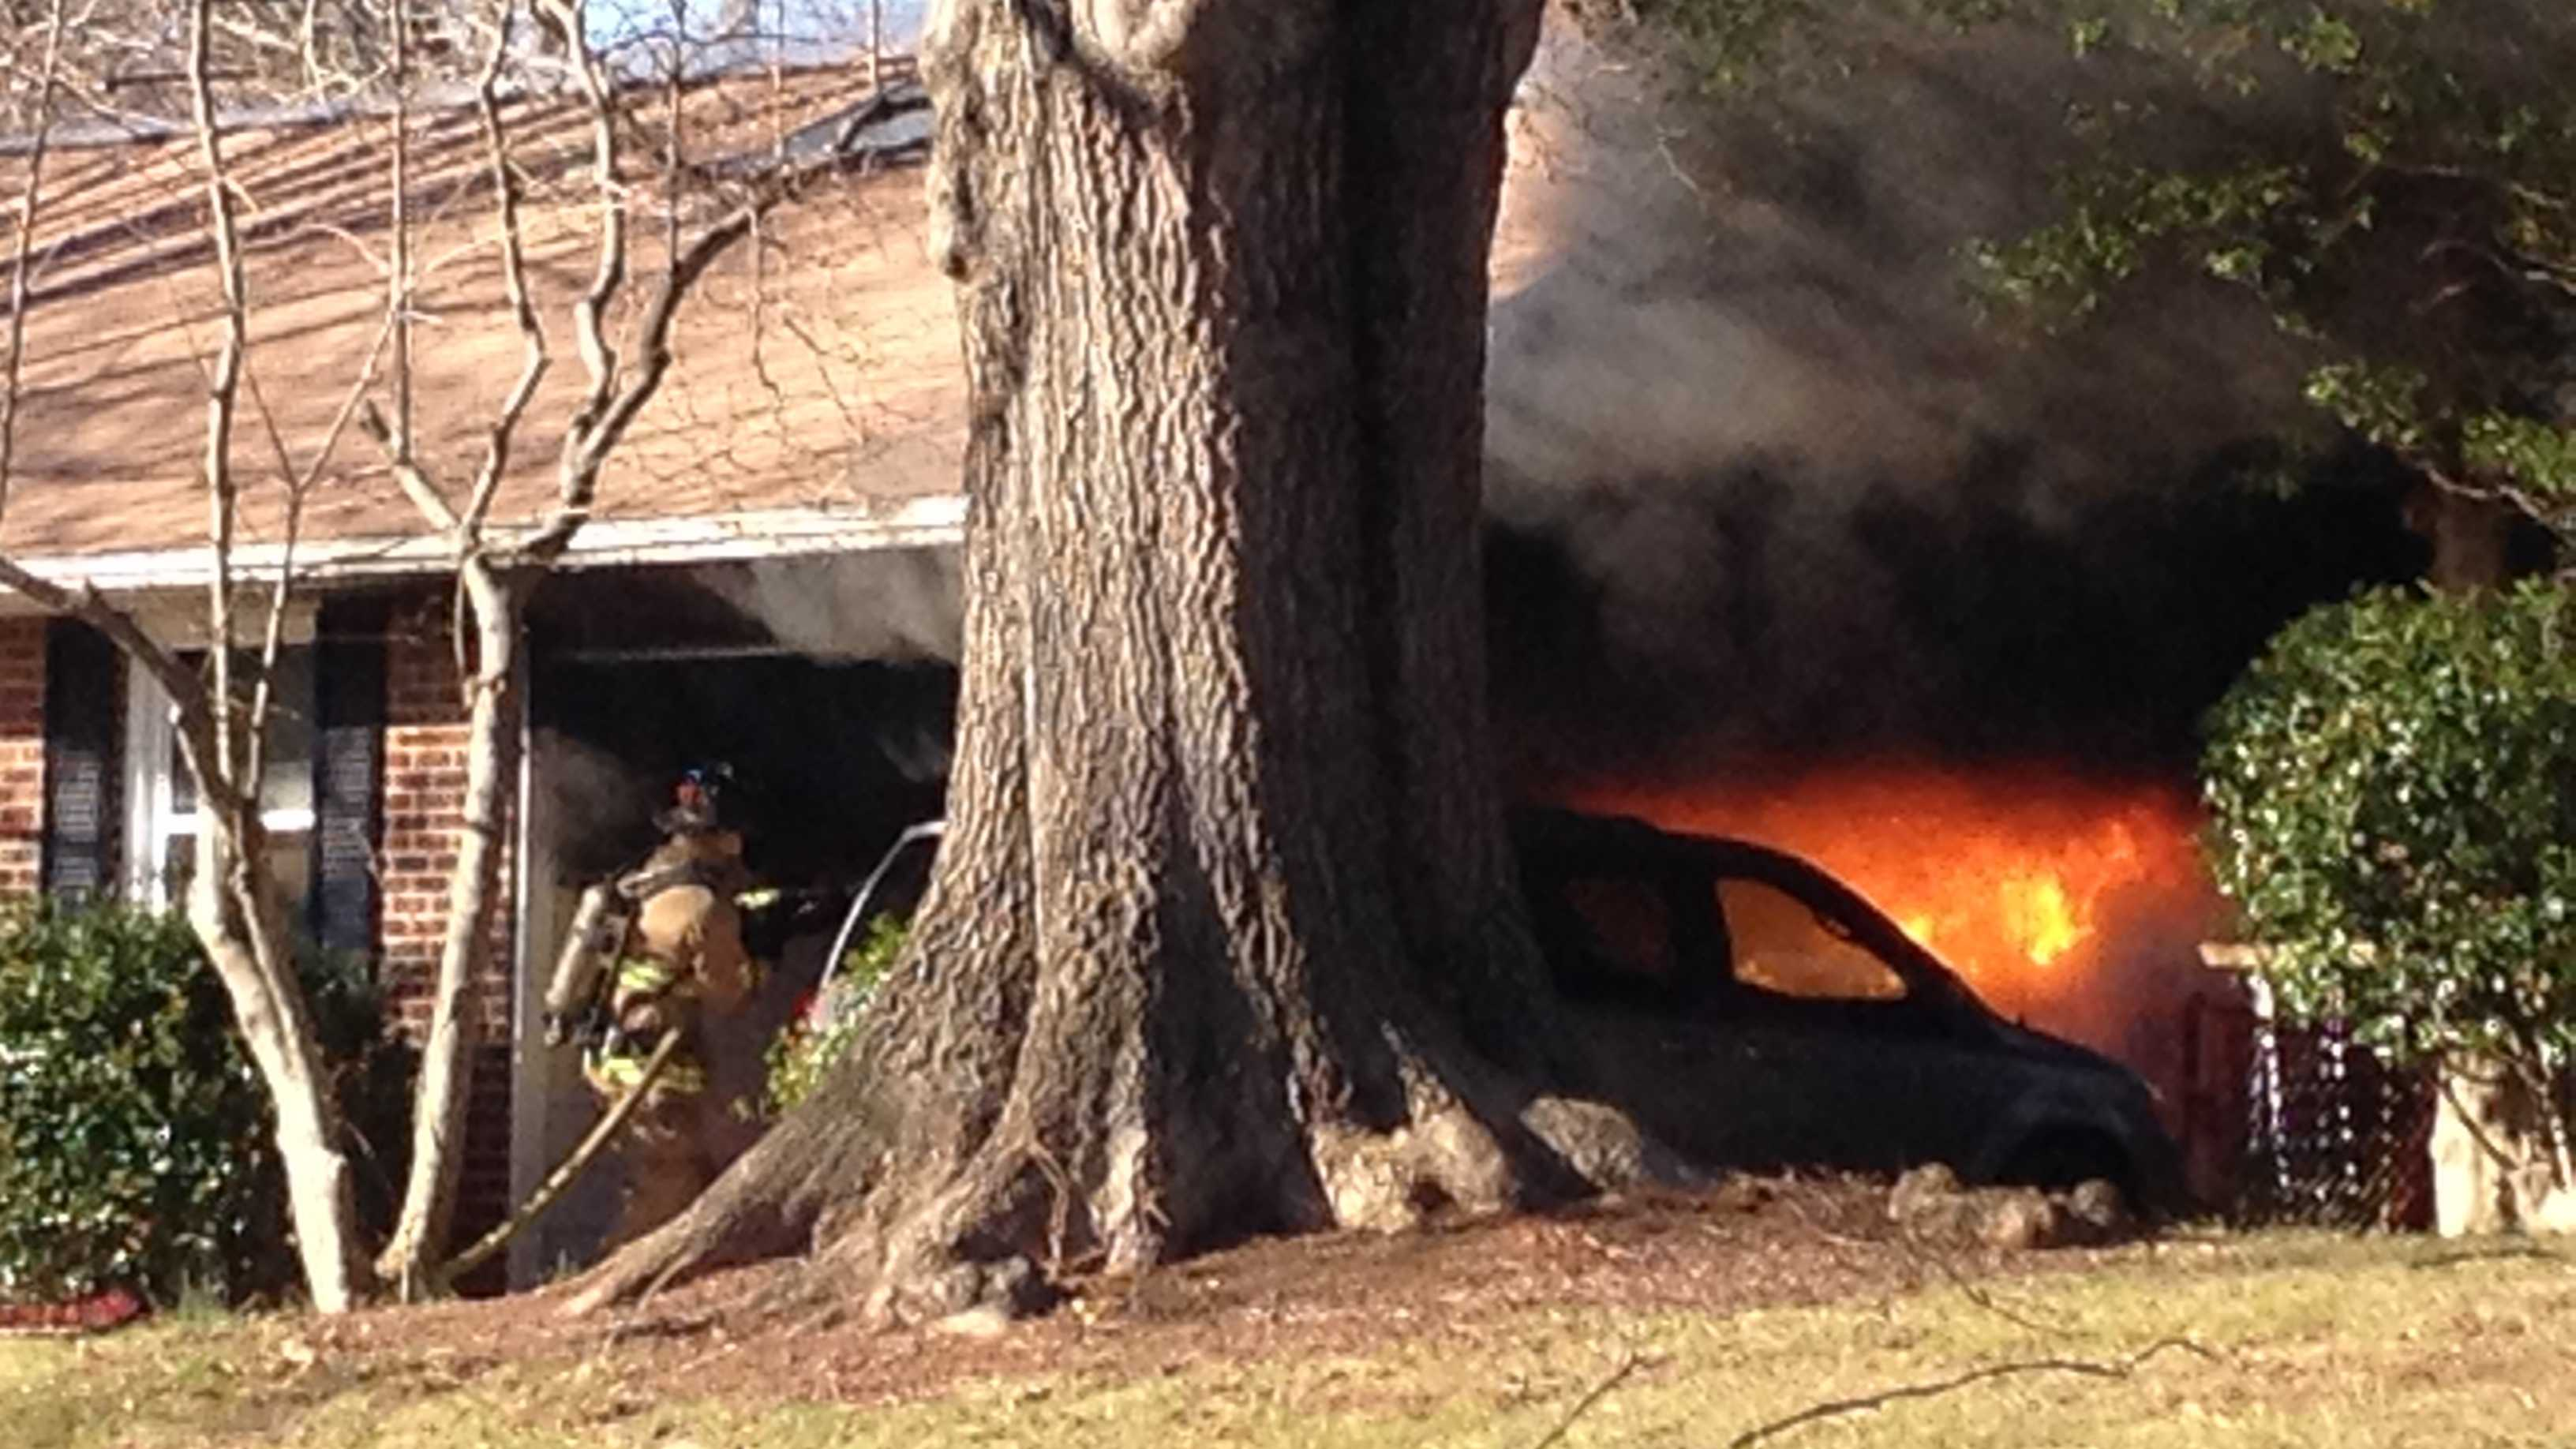 A WXII 12 'u local' viewer sent this photo of a fire on Lancelot Lane.